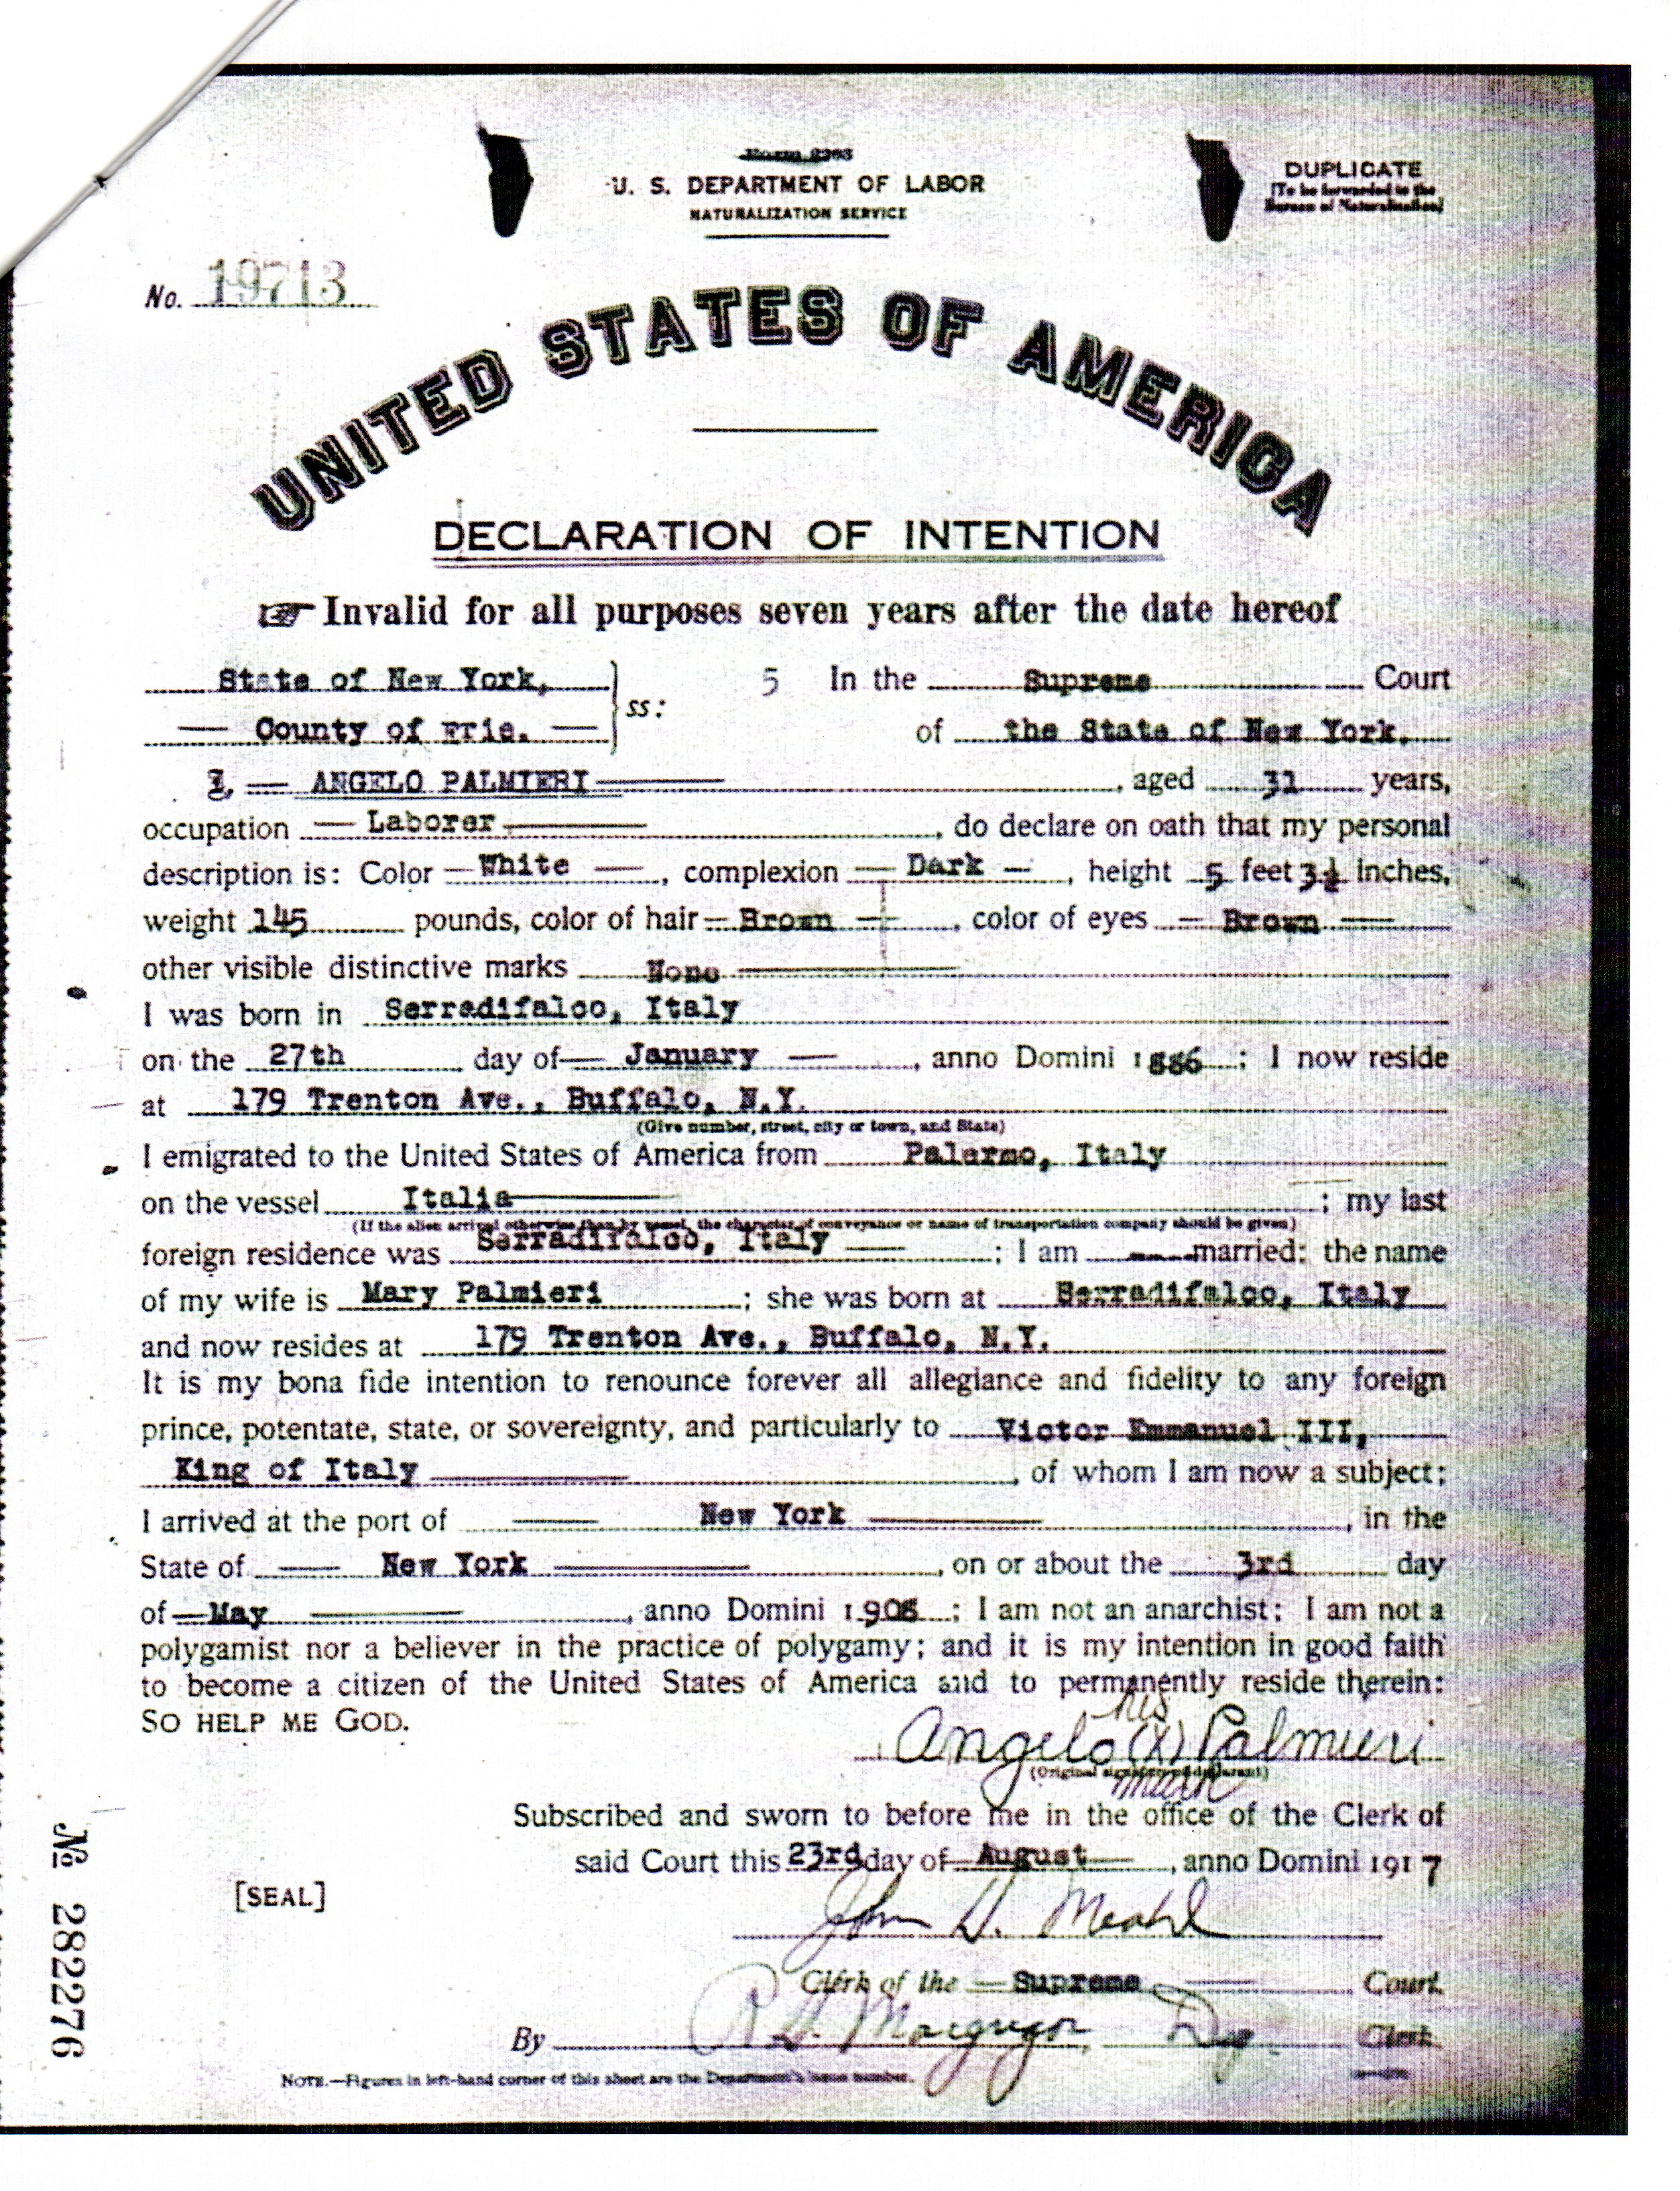 Naturalization genealogy and jure sanguinis my great grandfathers naturalization papers arrive xflitez Image collections